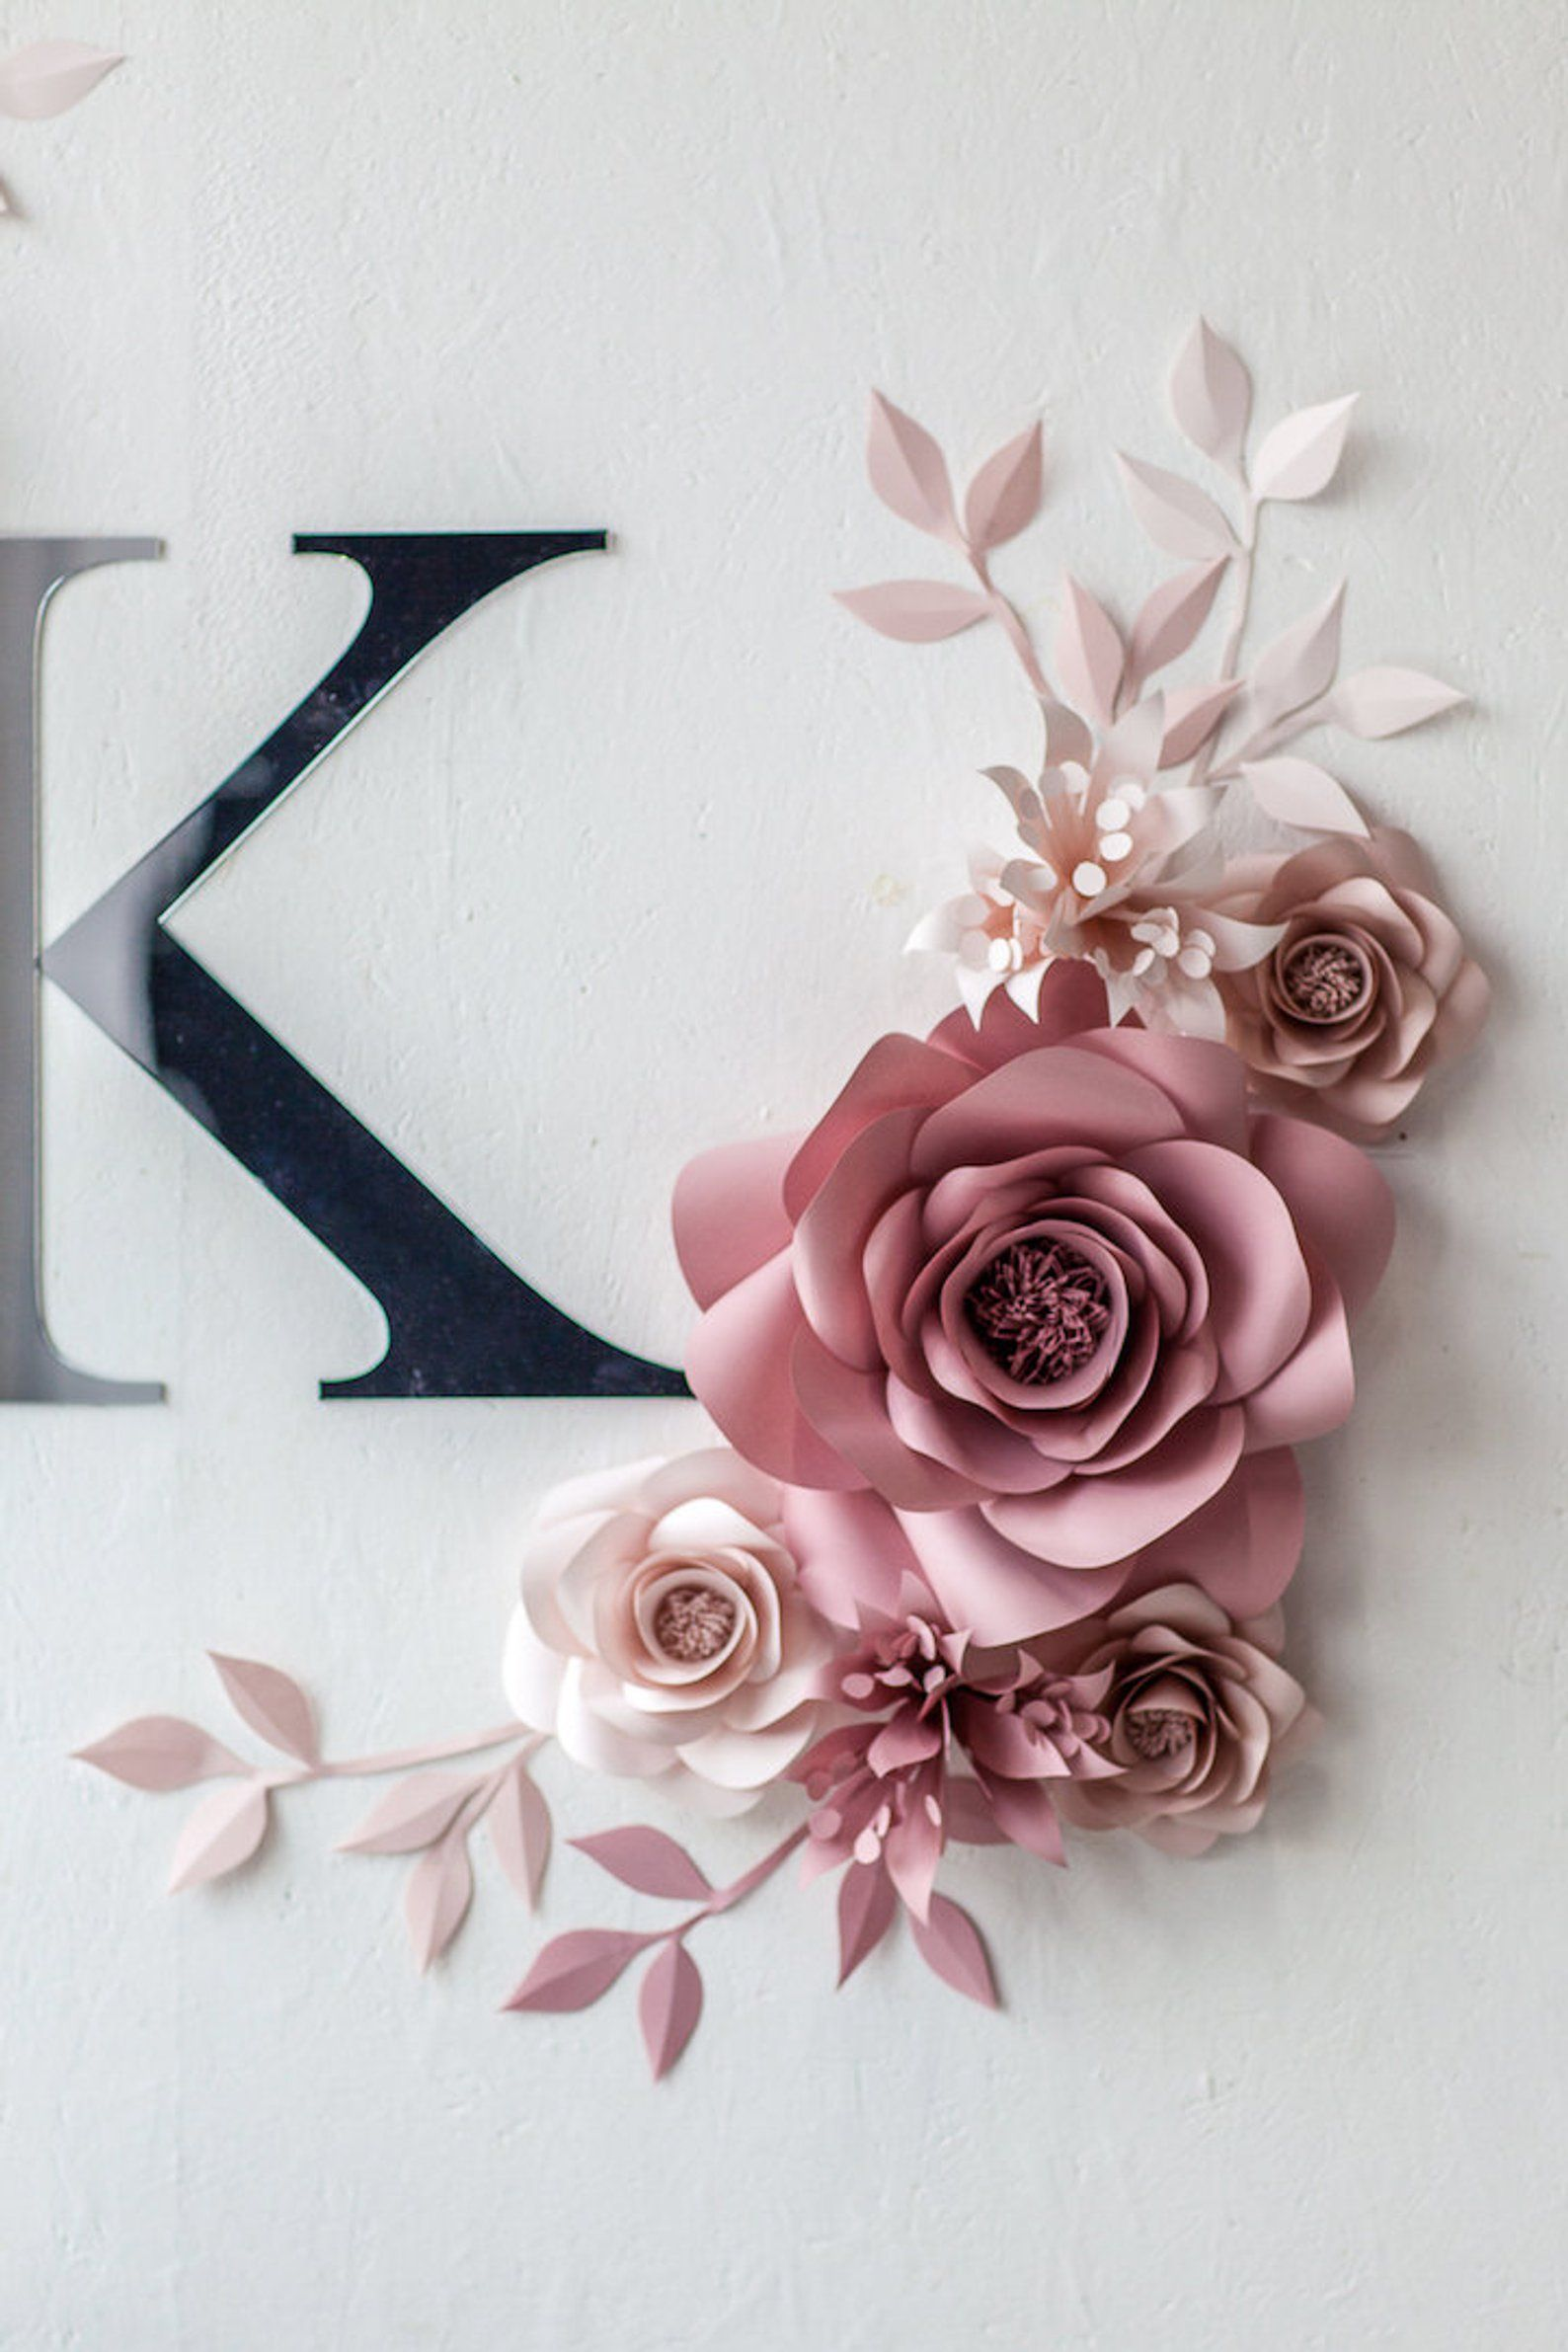 Personalized Nursery Wall Decor Paper Flowers Wall Decor In Pink